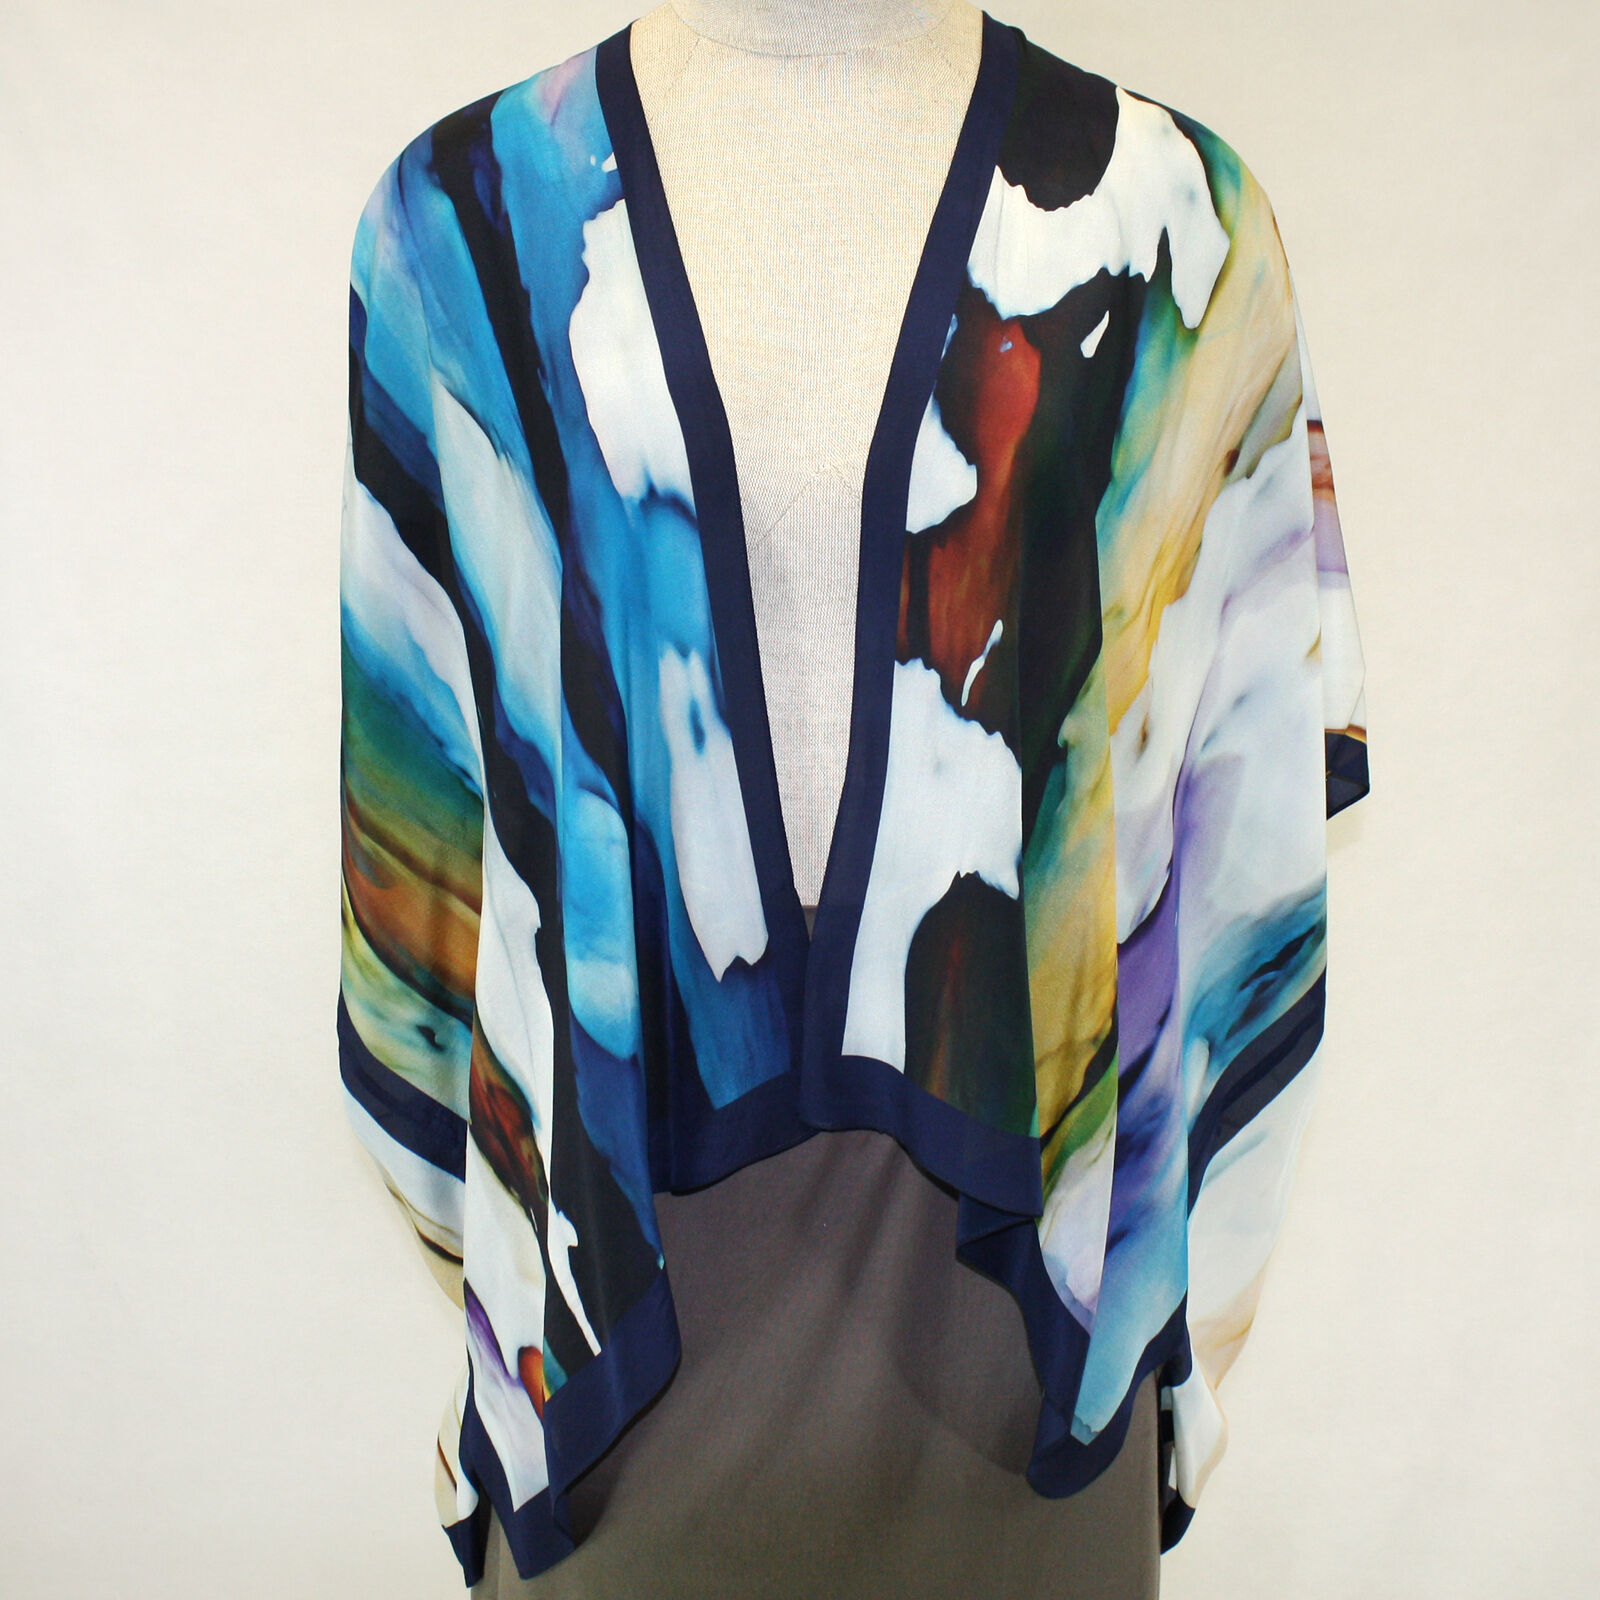 NEW NWT Cocoon House Wearable Art Print 100% Silk Kimono Top Large XL (1X, 2X)